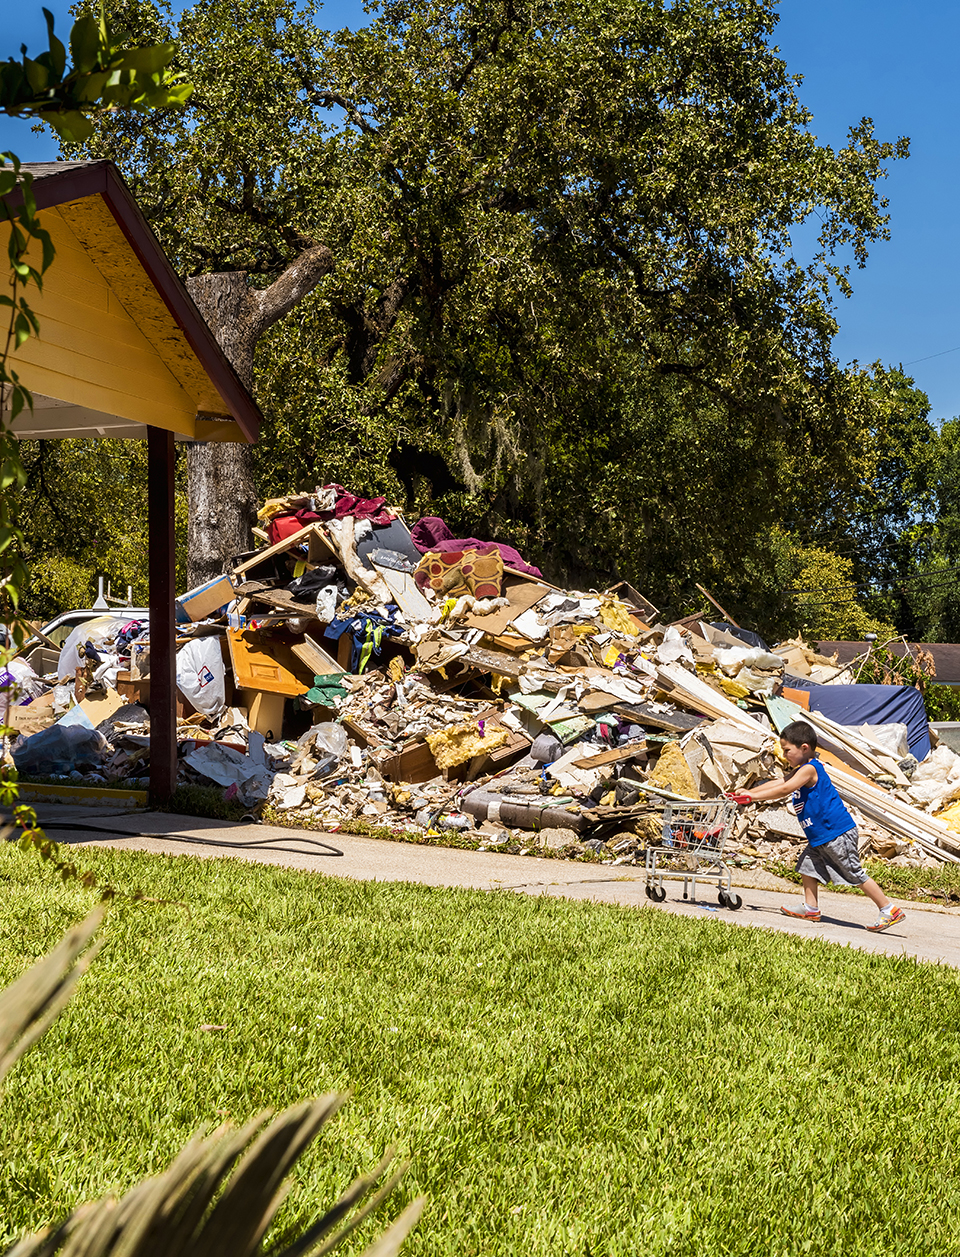 A boy plays in a driveway before a hill of refuse in northeast Houston. Previous page: A Texas flag wrapped around a palm tree at an RV park in Port Aransas. (Photo by Danny Fulgencio)